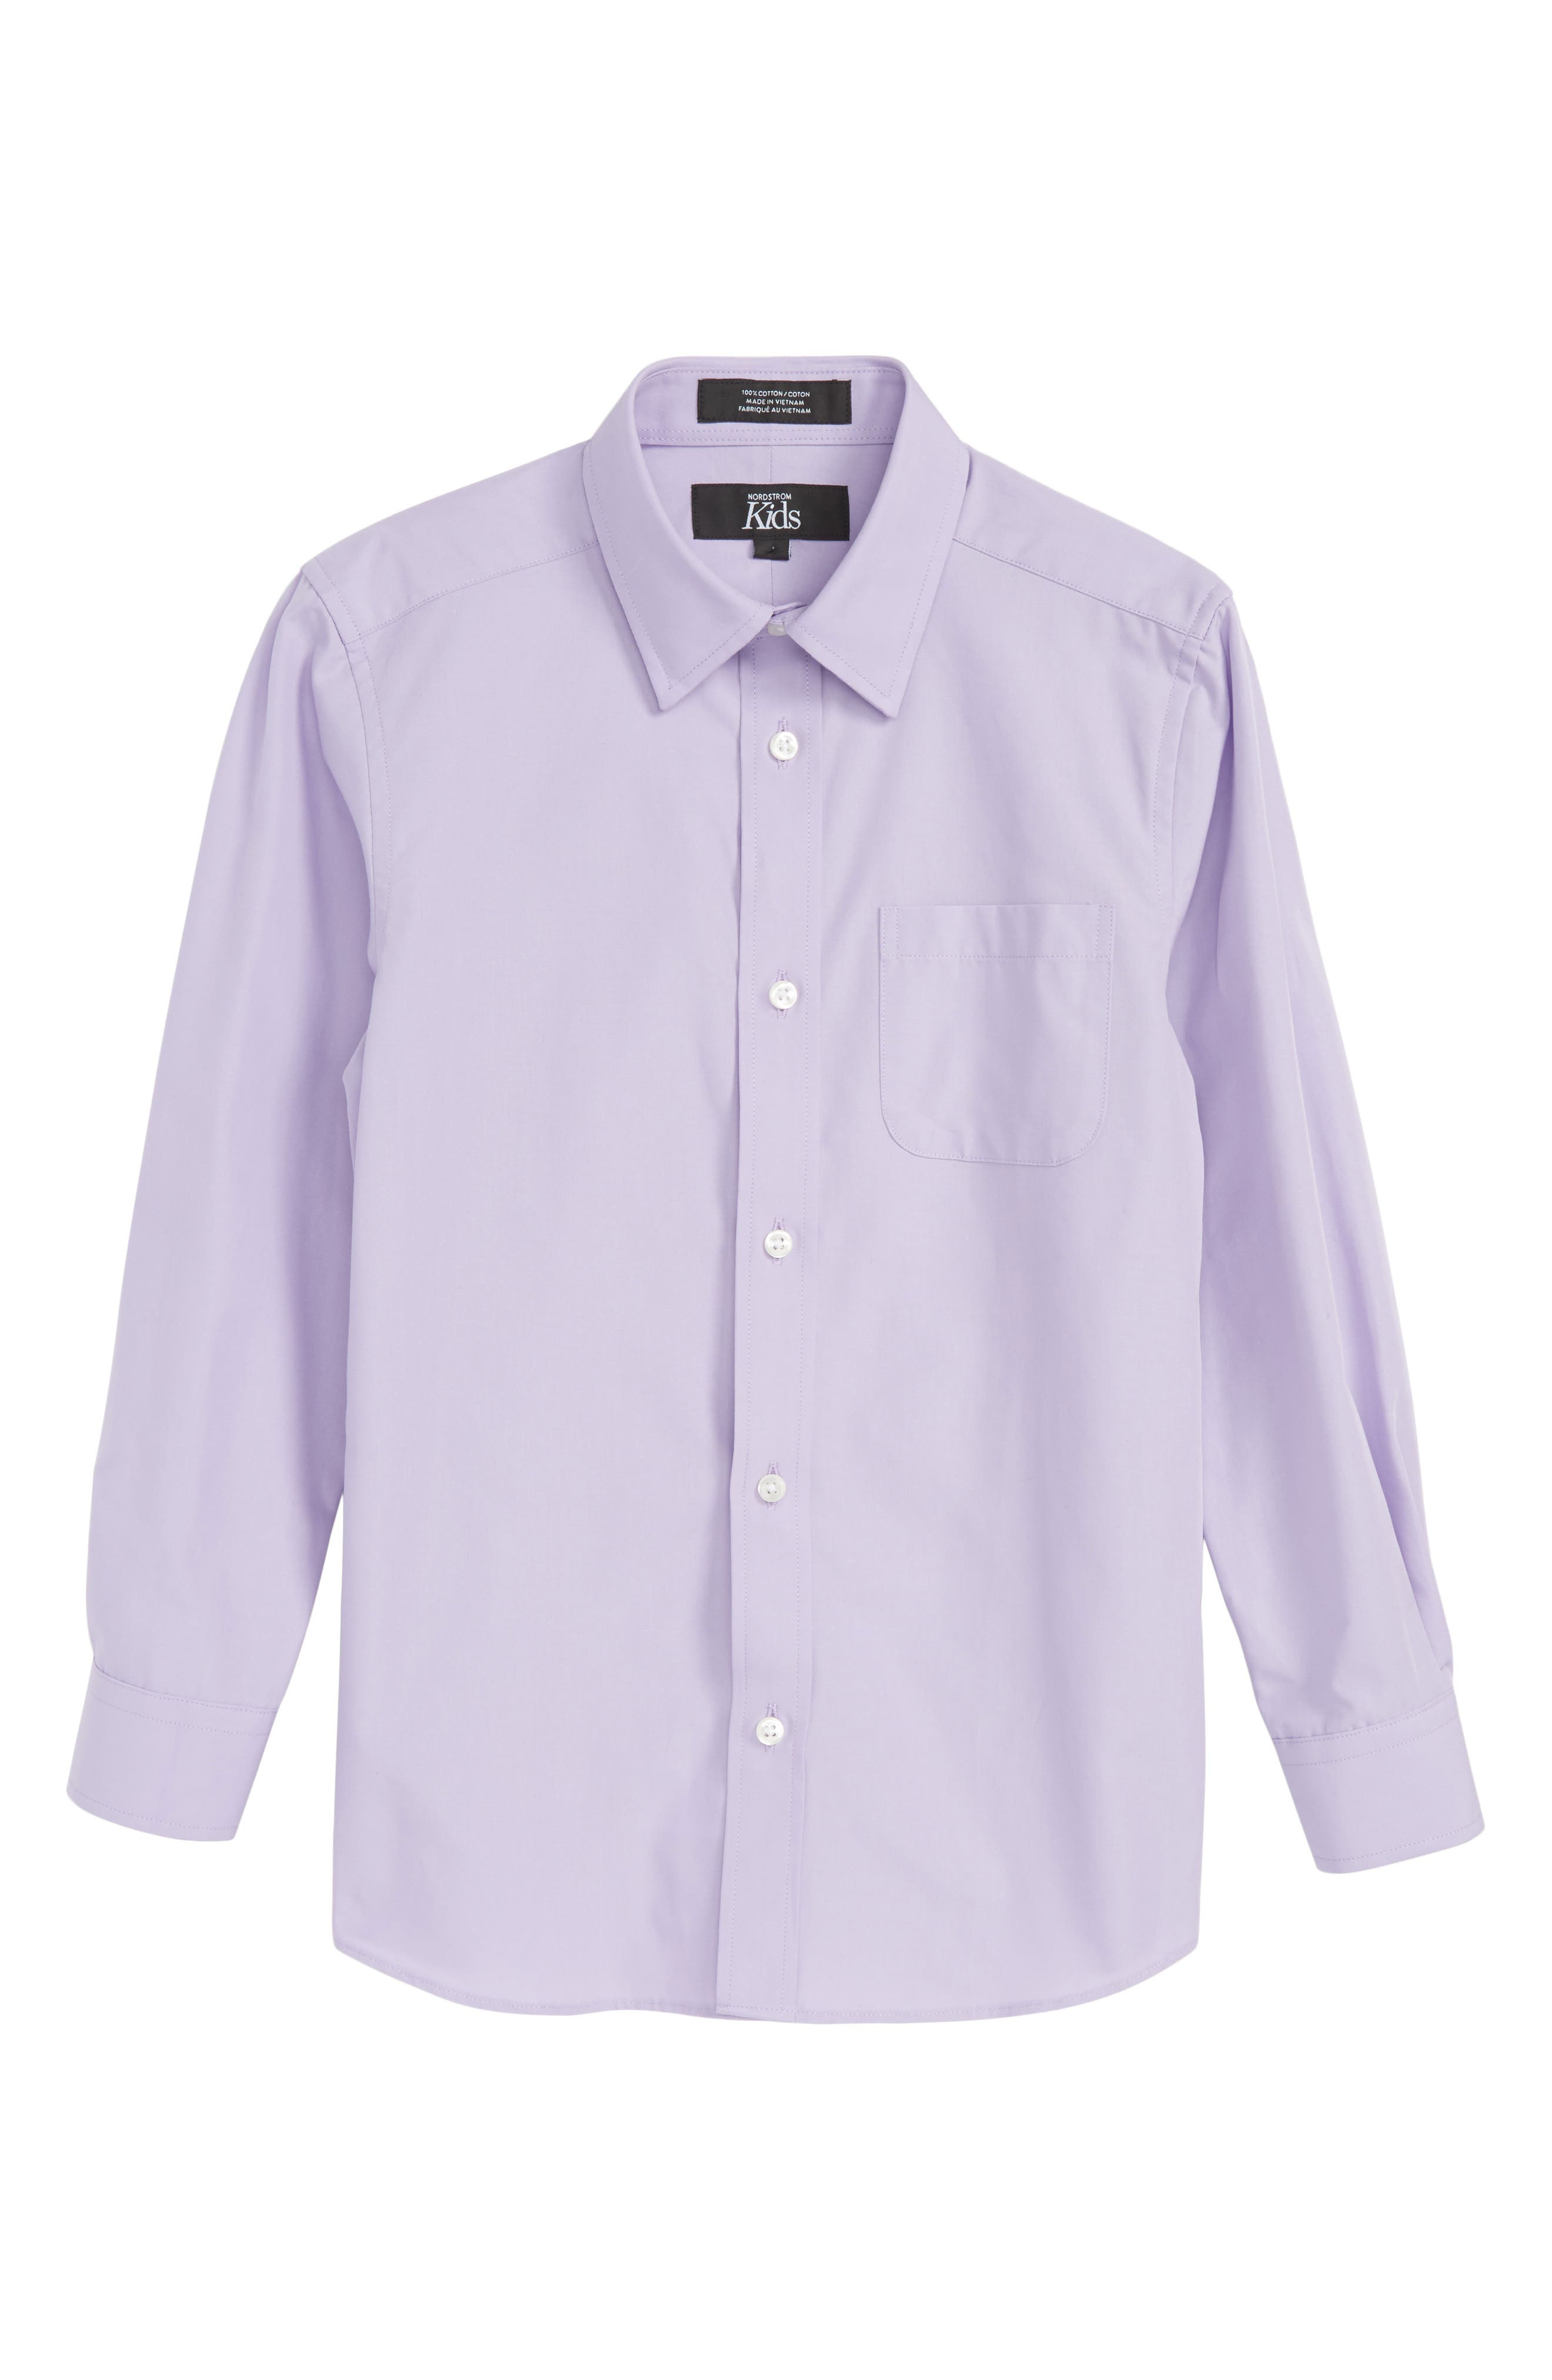 Lavender Spray Sport Shirt,                         Main,                         color, Lavender Spray